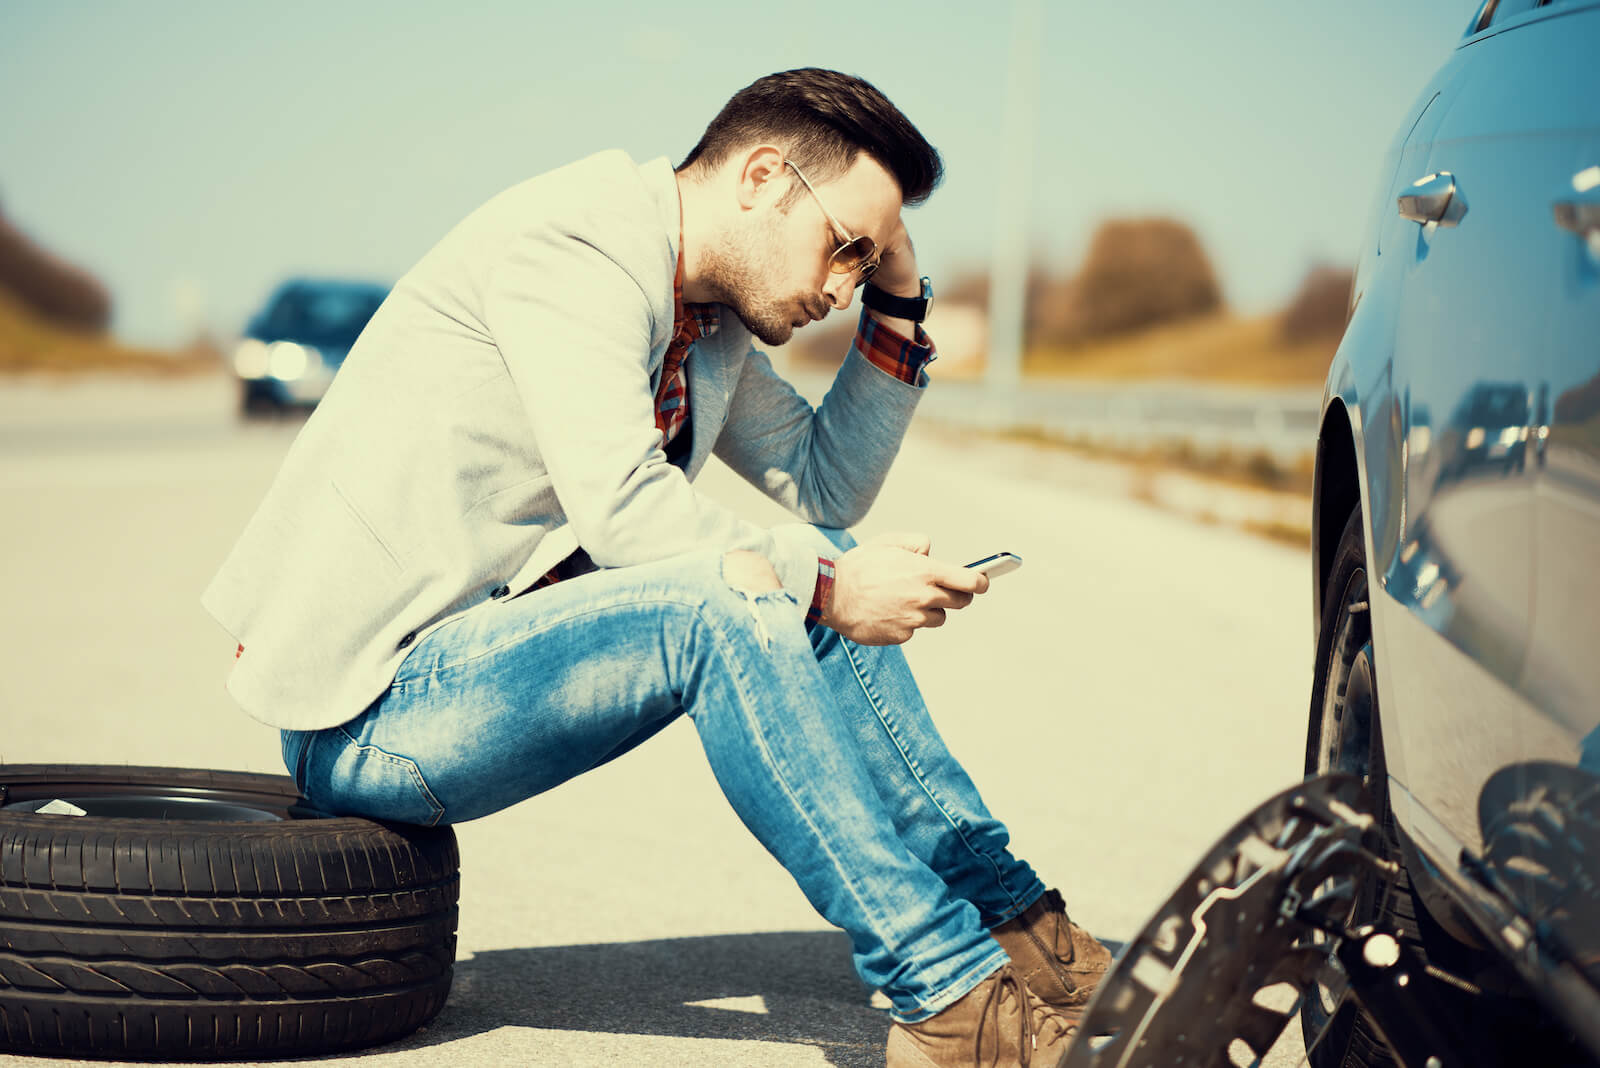 Best credit cards with roadside assistance in 2020